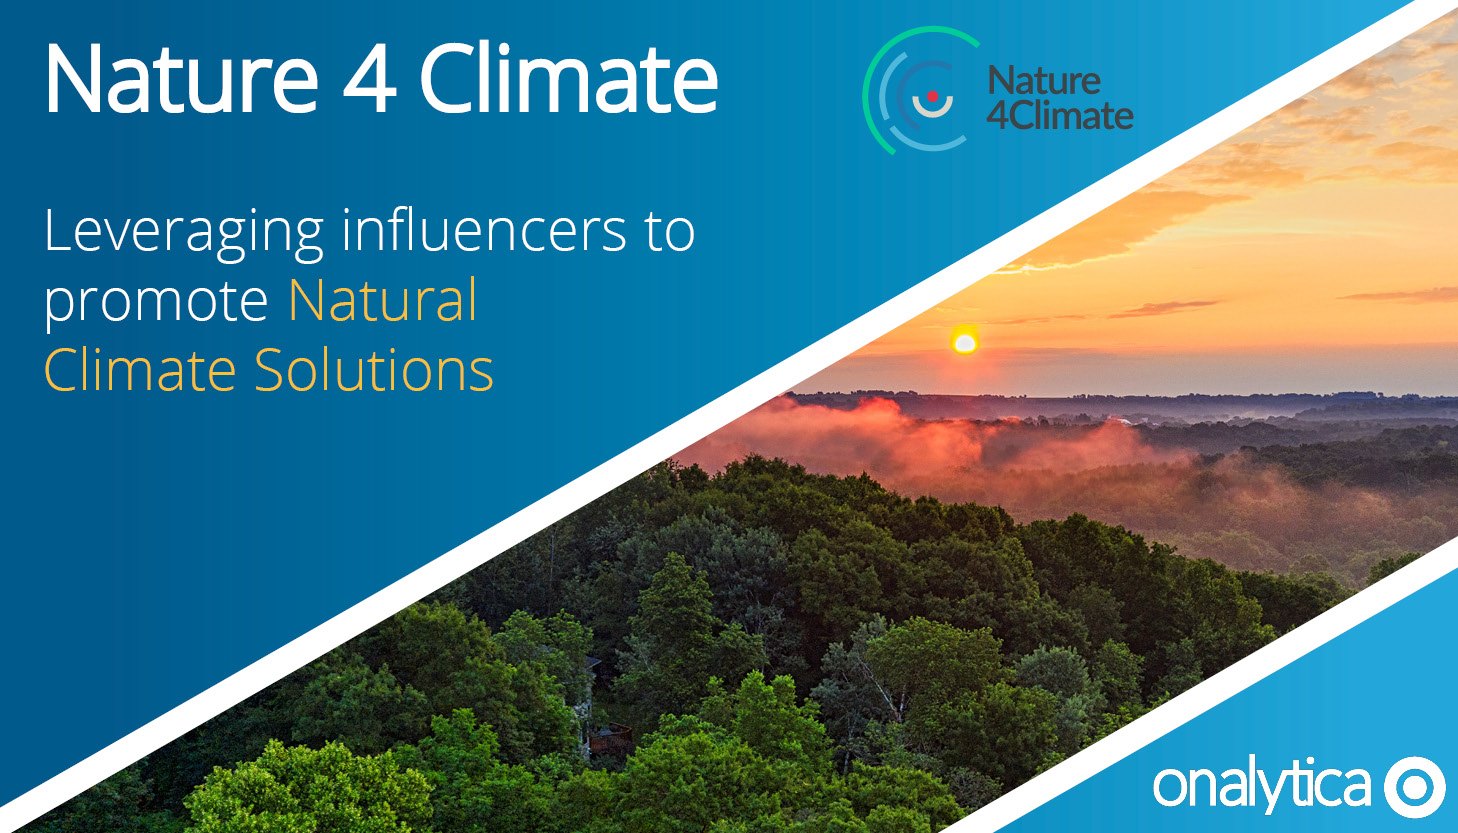 Nature 4 Climate - Leveraging Influencers to Promote Natural Climate Solutions